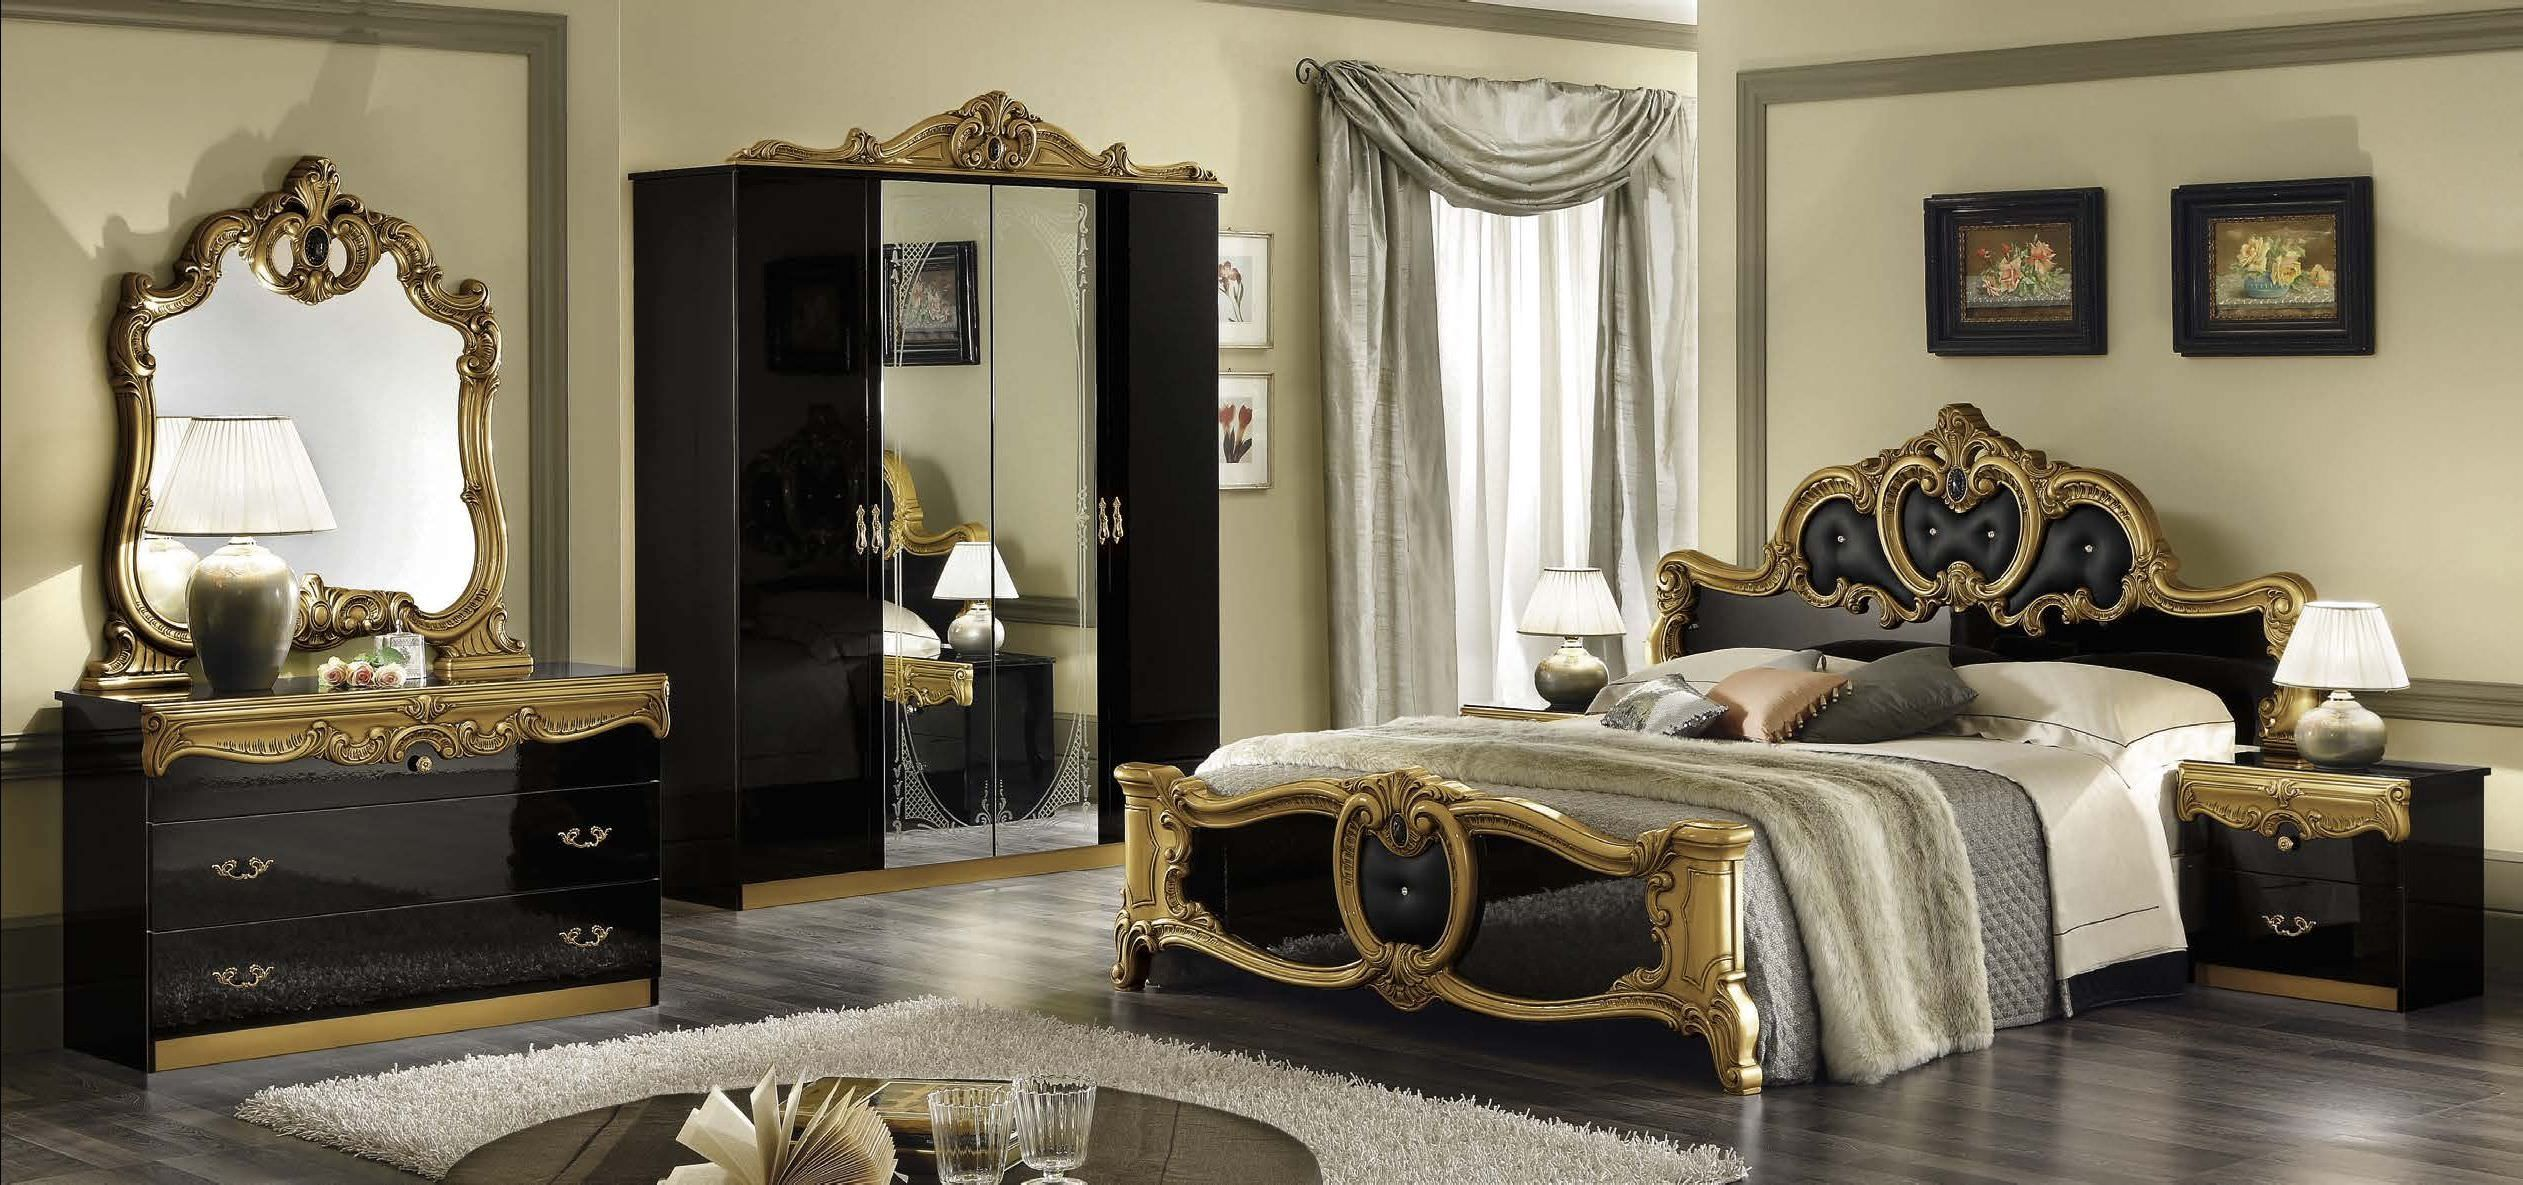 Decoration Marvelous Black And Gold Bedroom